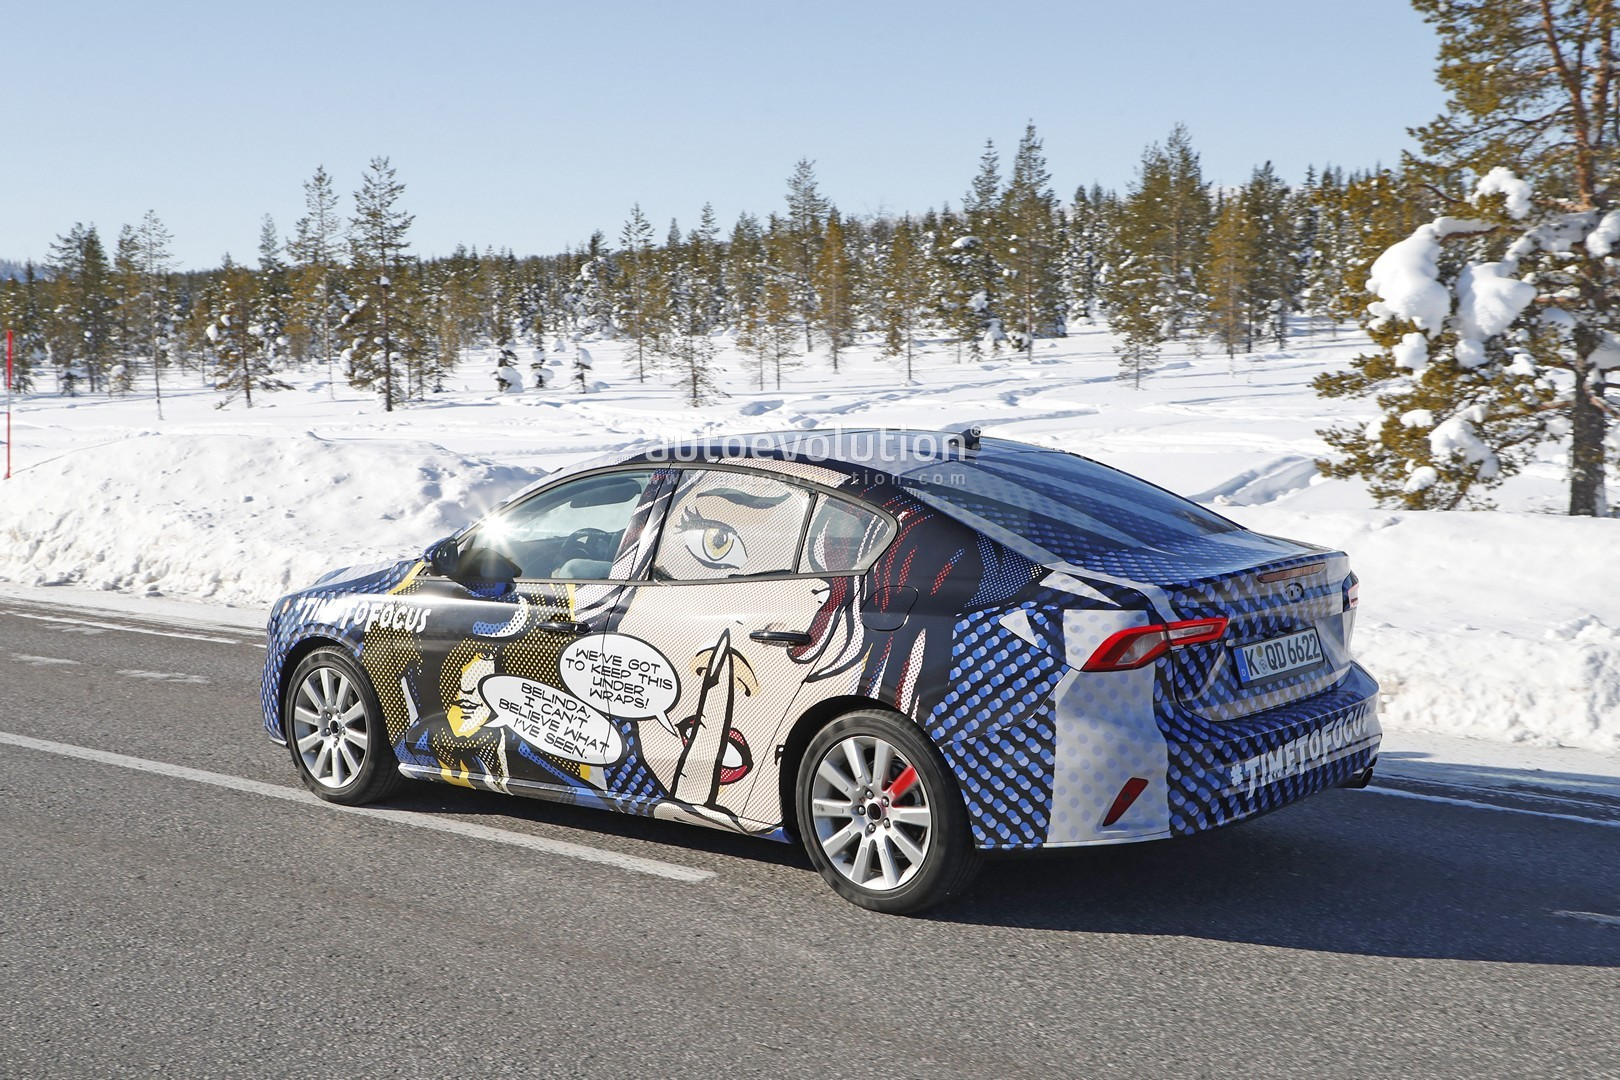 2019 Ford Focus Sedan Has Comic Wrap, Looks Like a Volvo - autoevolution